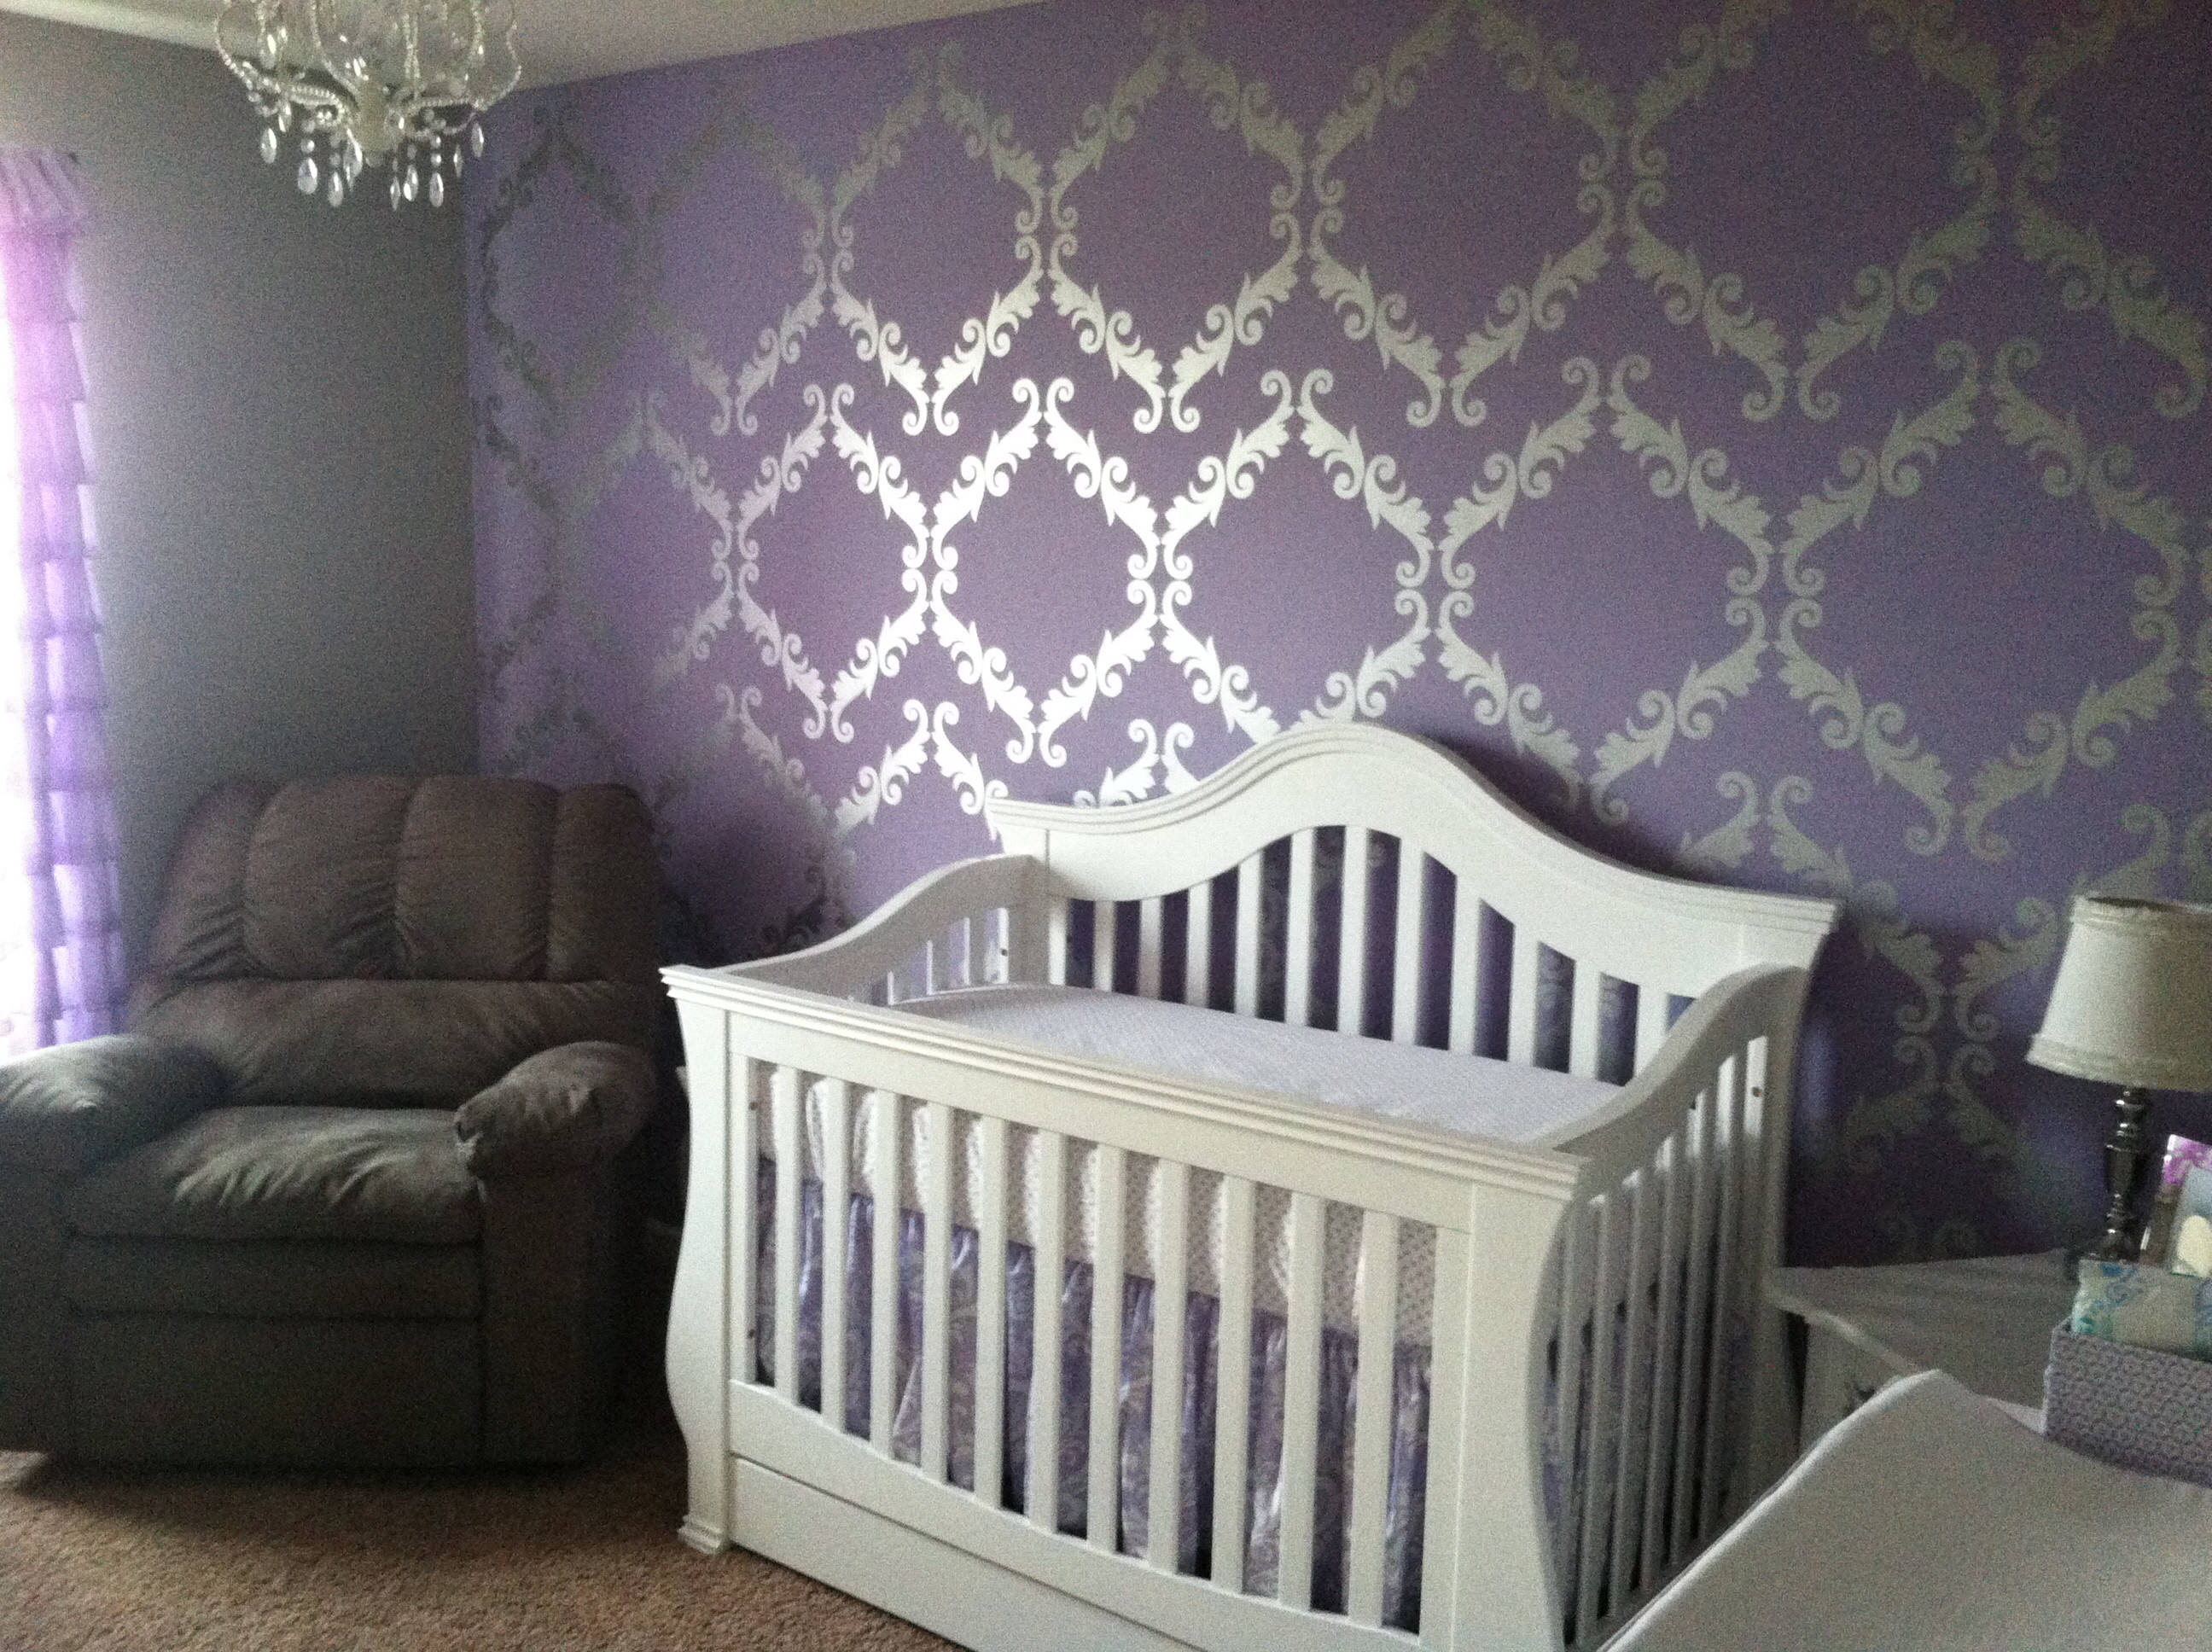 2592x1936 Purple, metallic silver and white baby girl's nursery